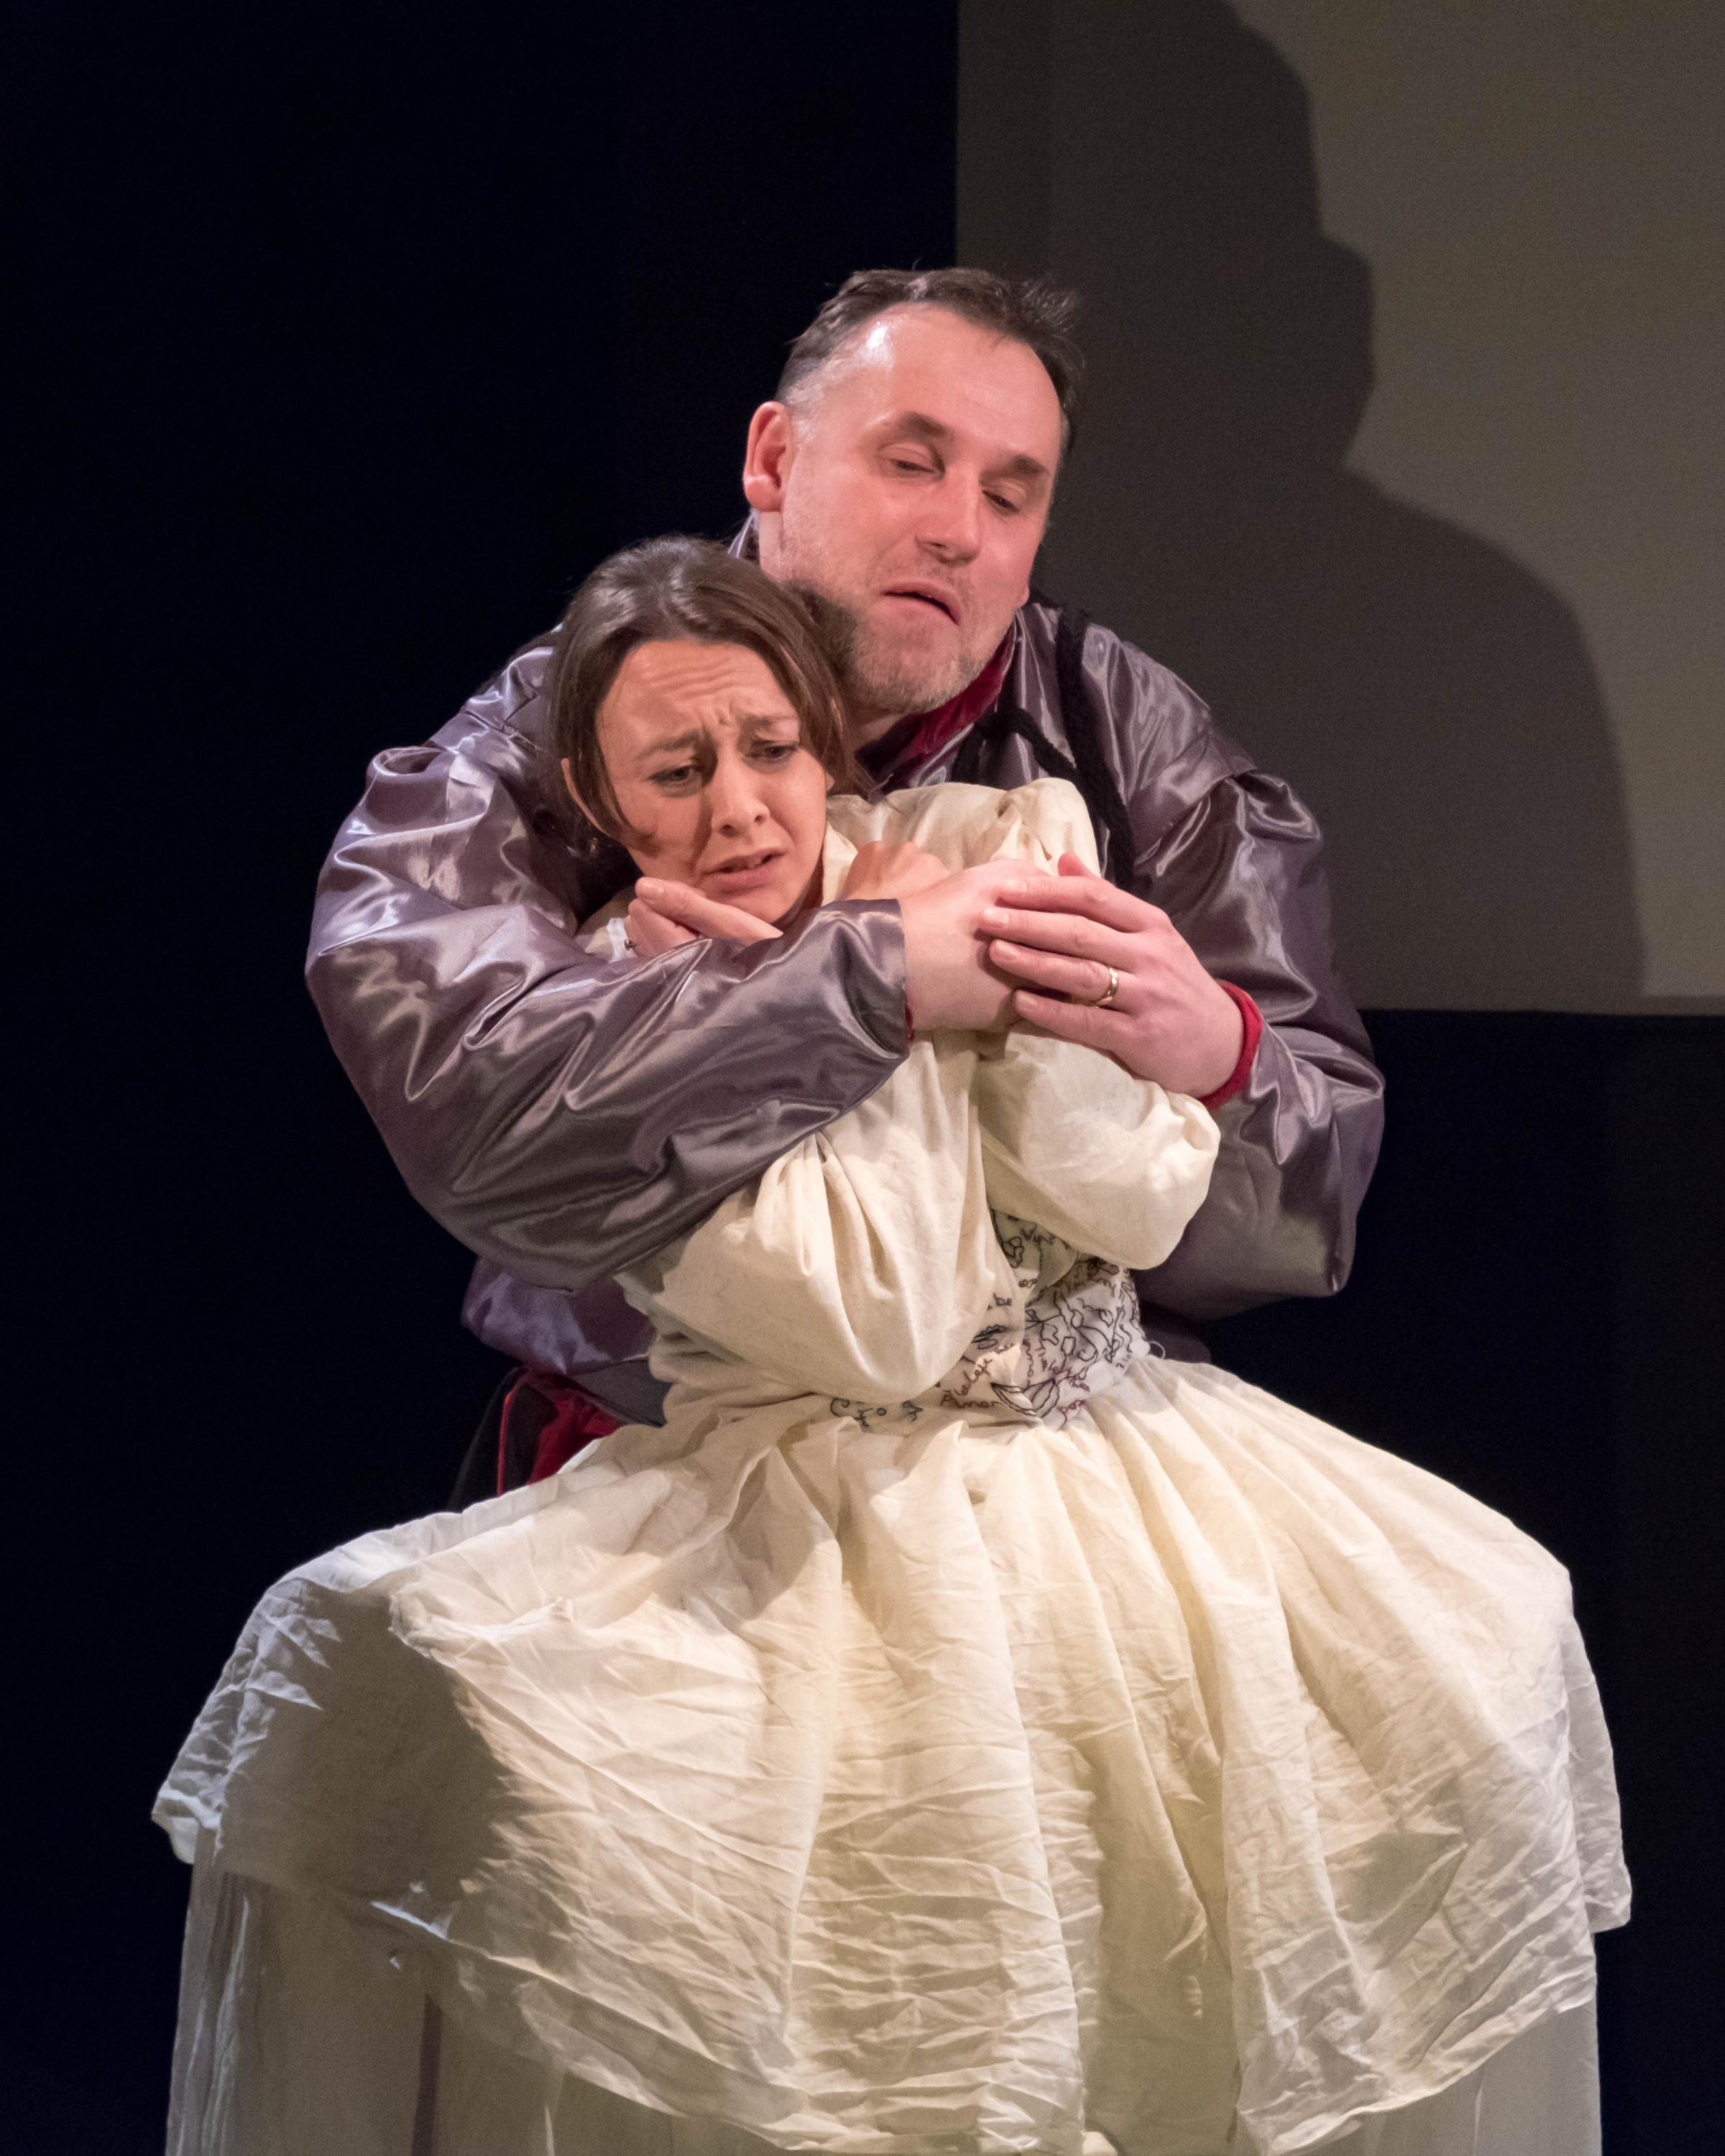 Mark France and Anna Rose James grappling with Shakespeare/Middleton's A Yorkshire Tragedy